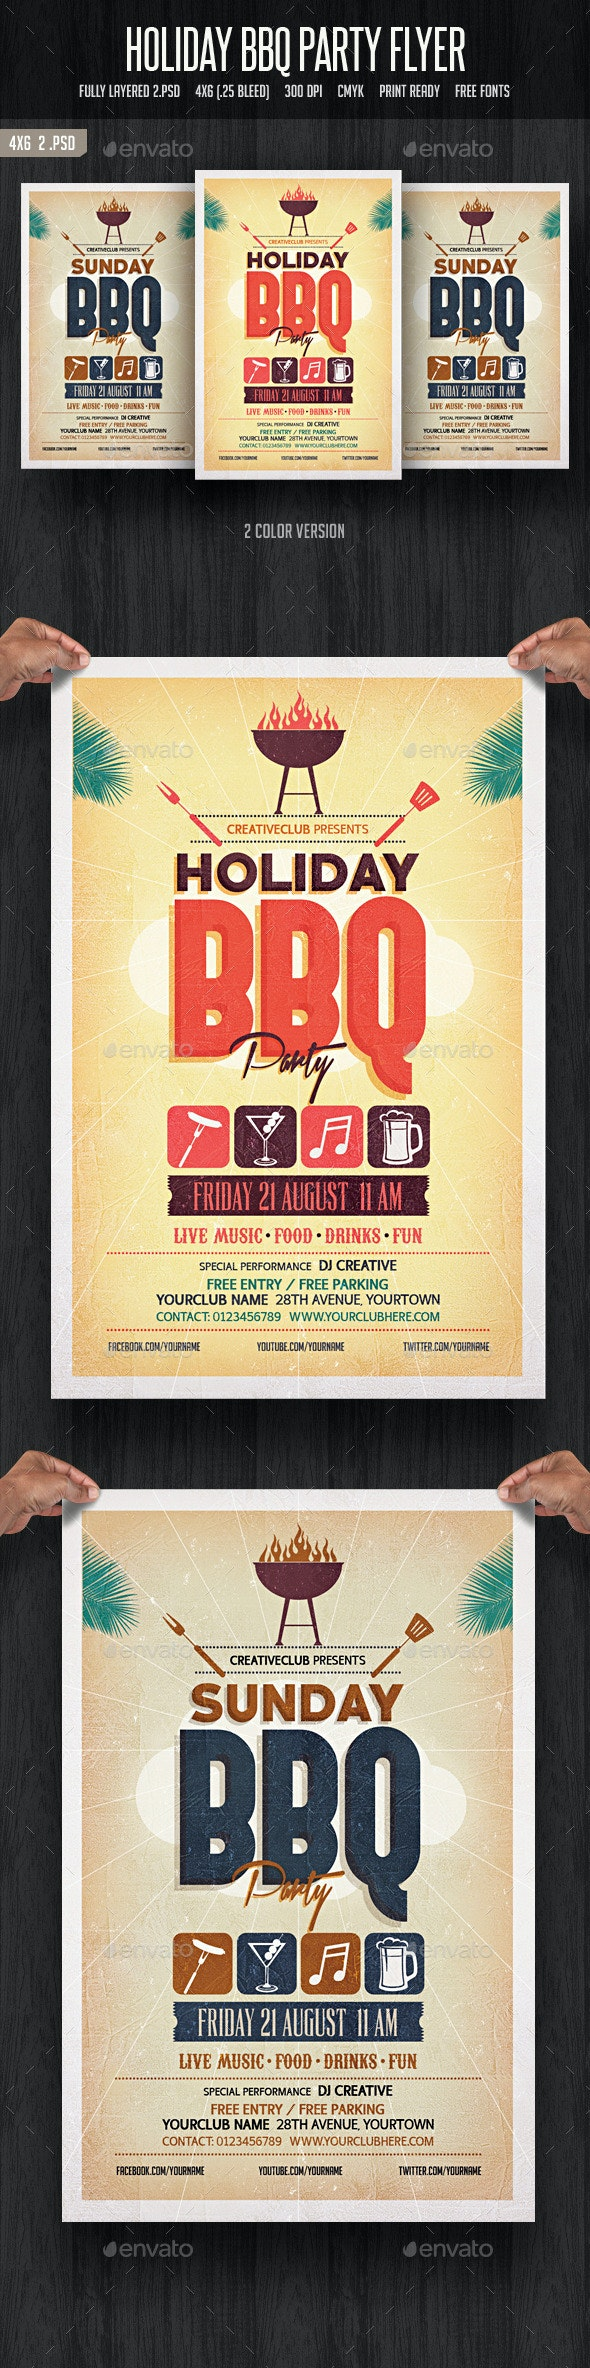 Holiday BBQ Party Flyer - Clubs & Parties Events